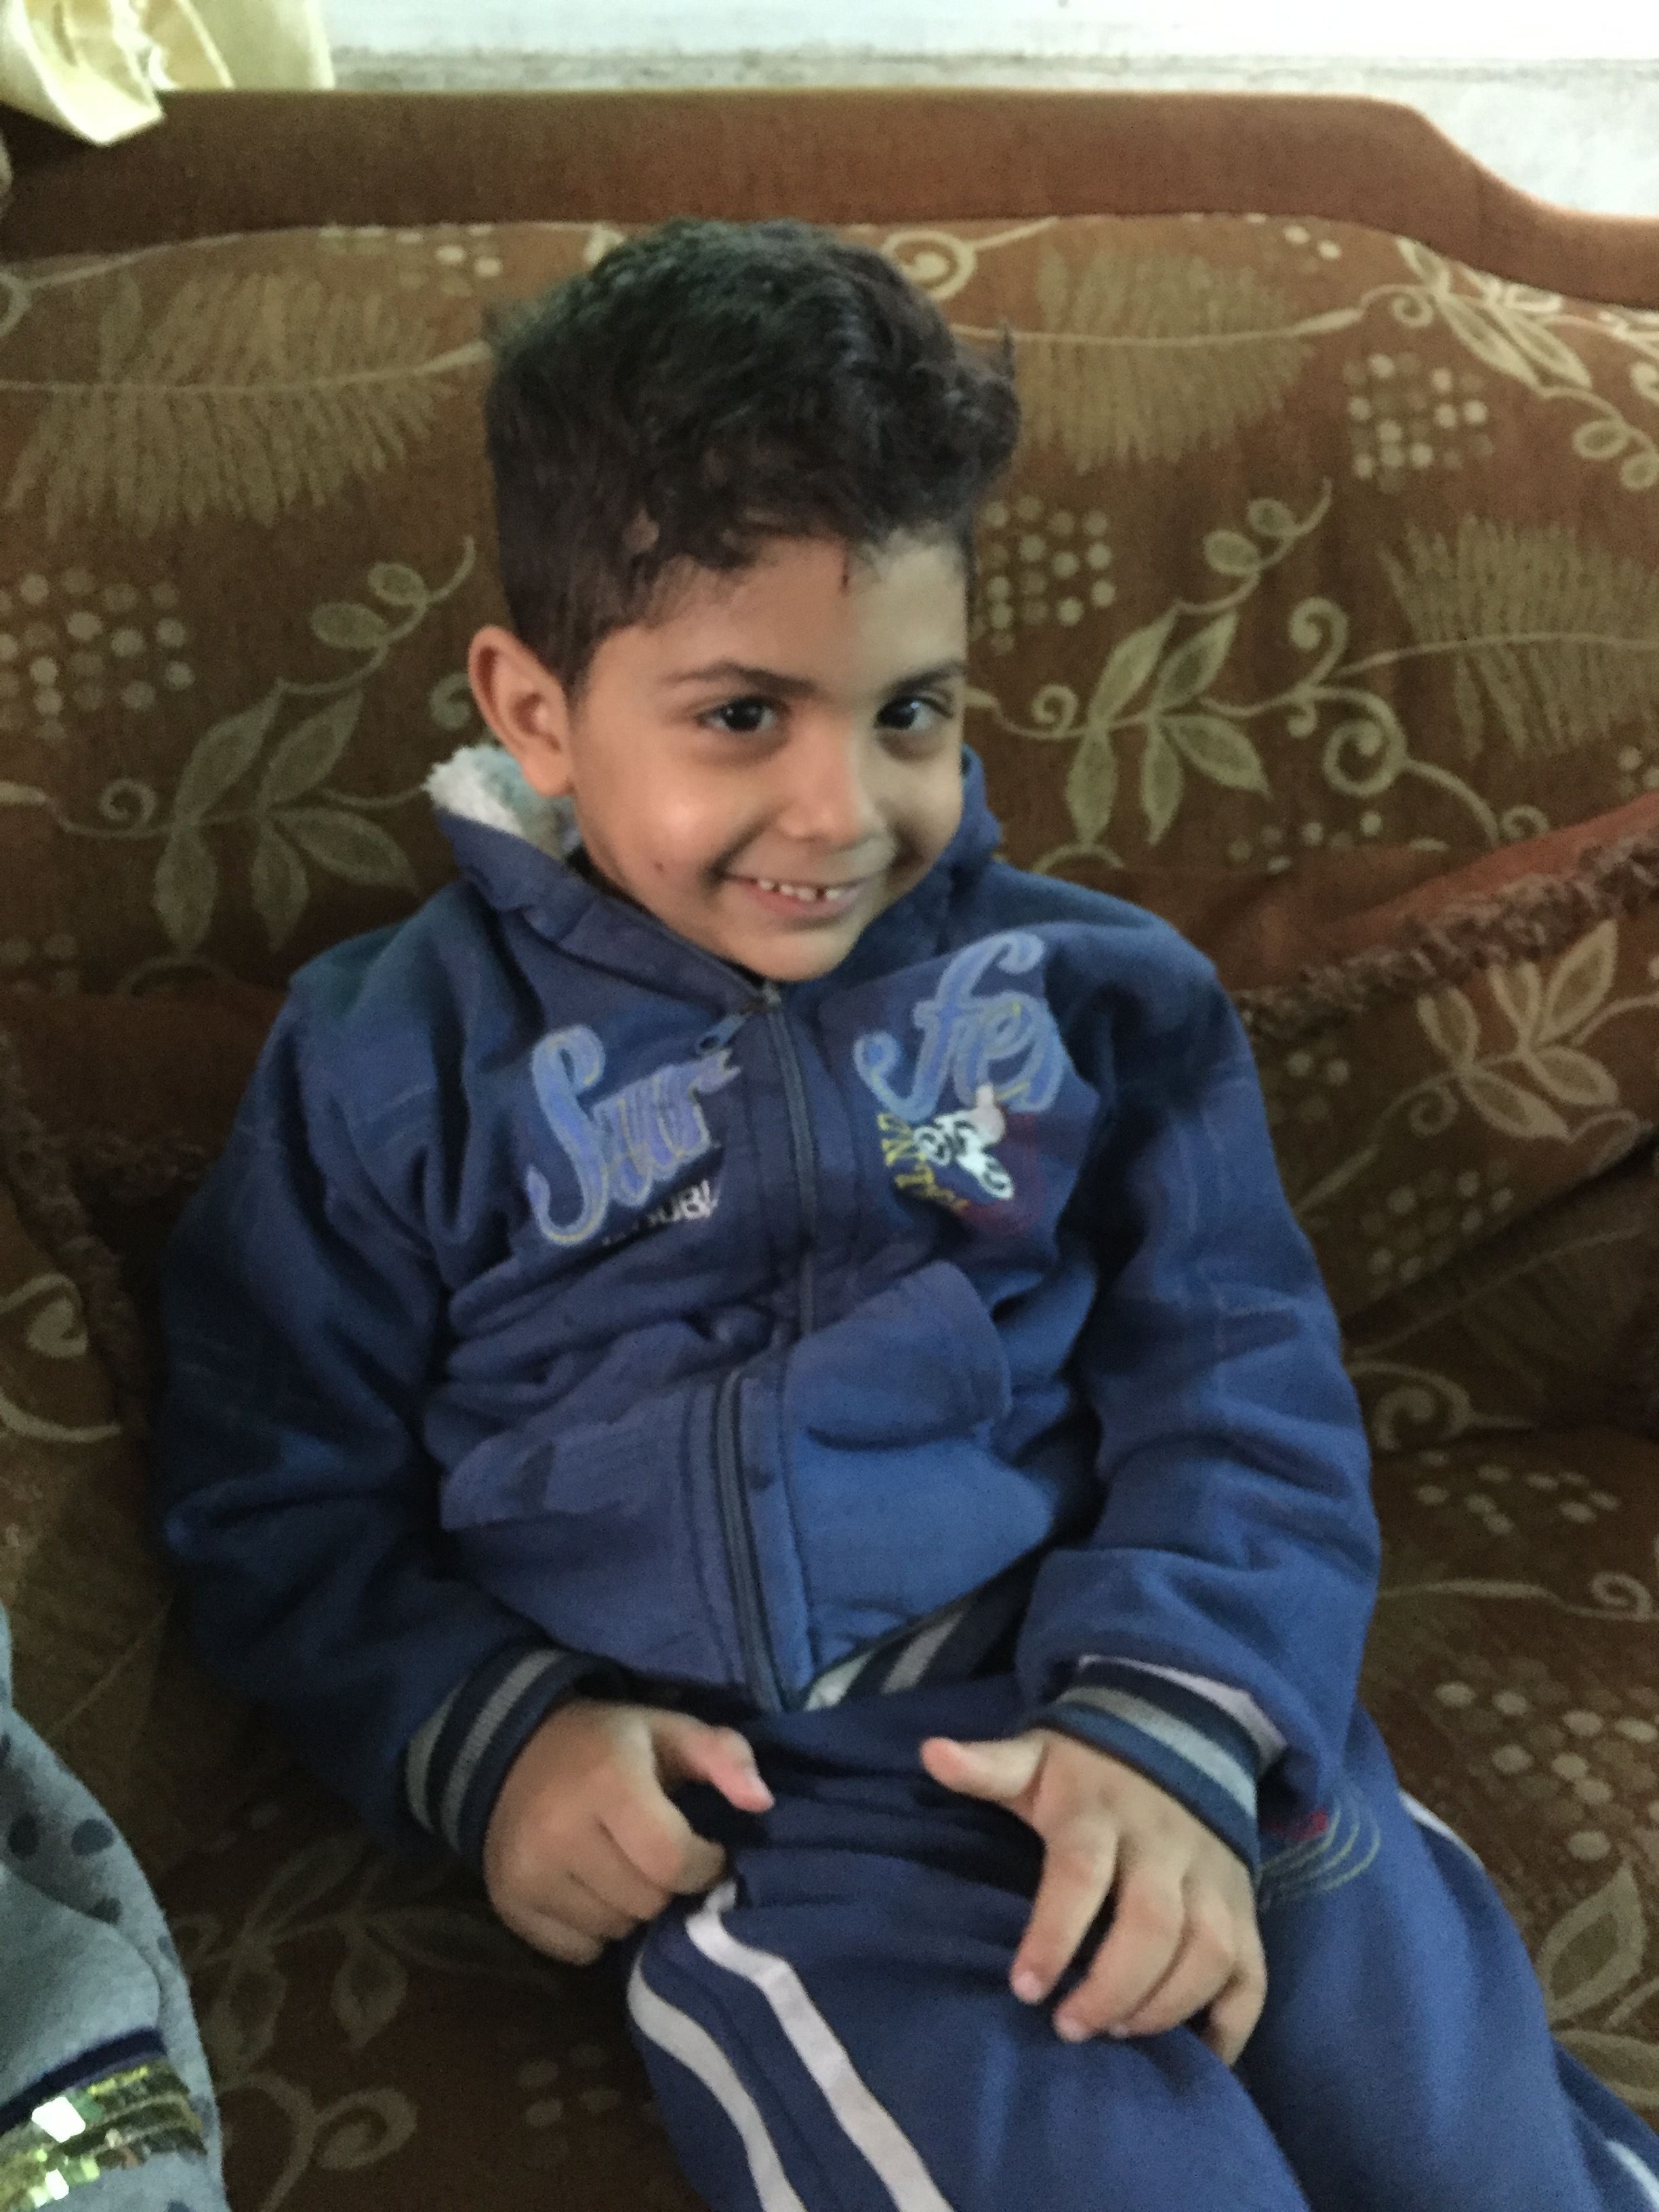 The Dreams of a Child - To go to school like everyone else is what Zeid wishes for